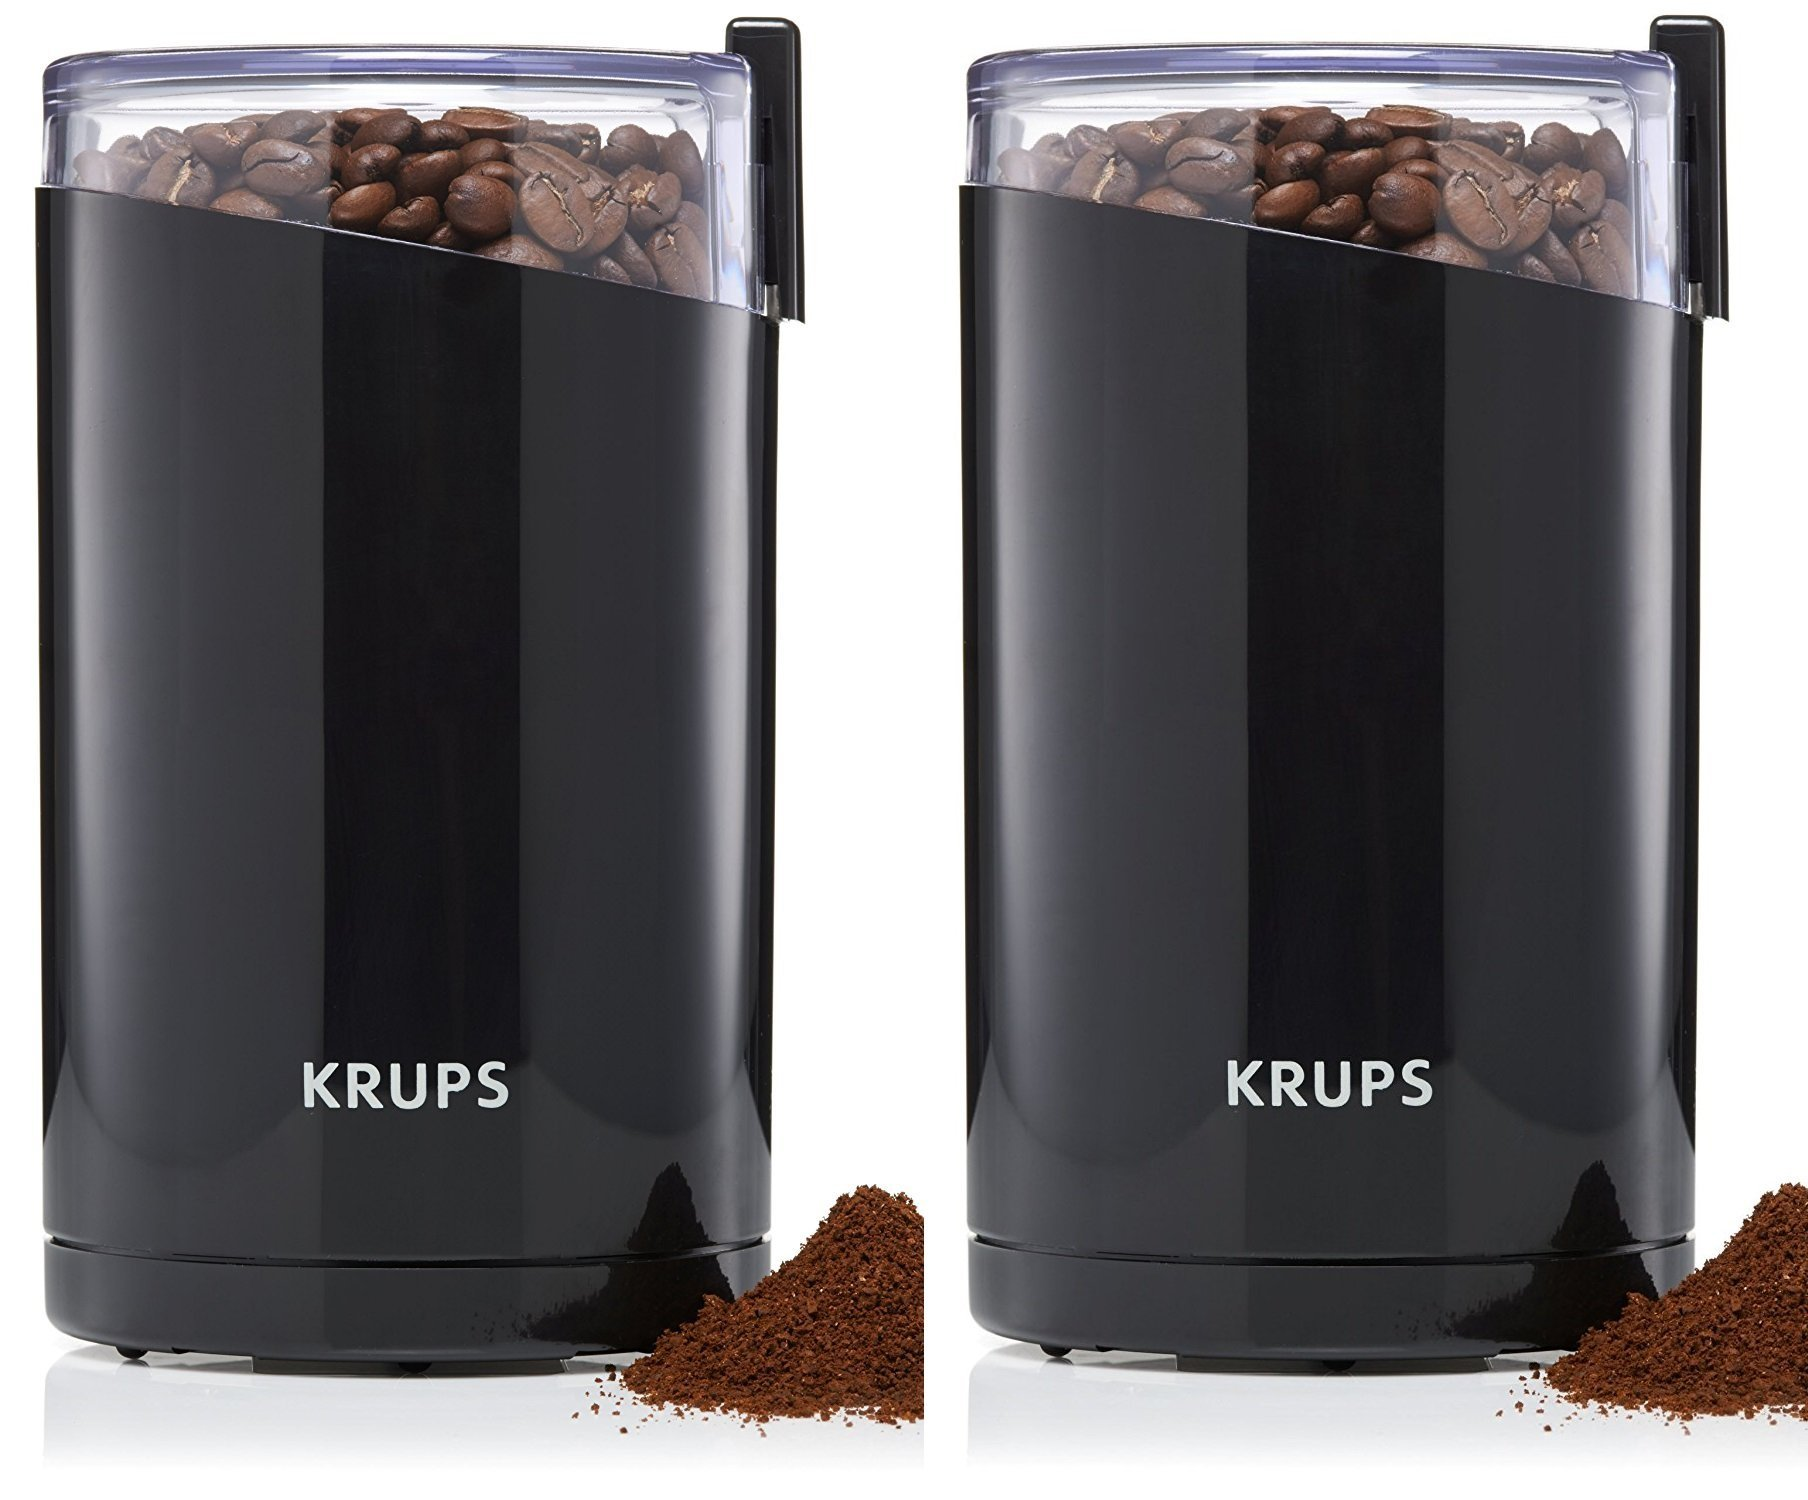 KRUPS F203 Electric Spice and Coffee RKfDXa Grinder with Stainless Steel Blades, 3-Ounce, Black, Blade Grinder (Pack of 2) by KRUPS